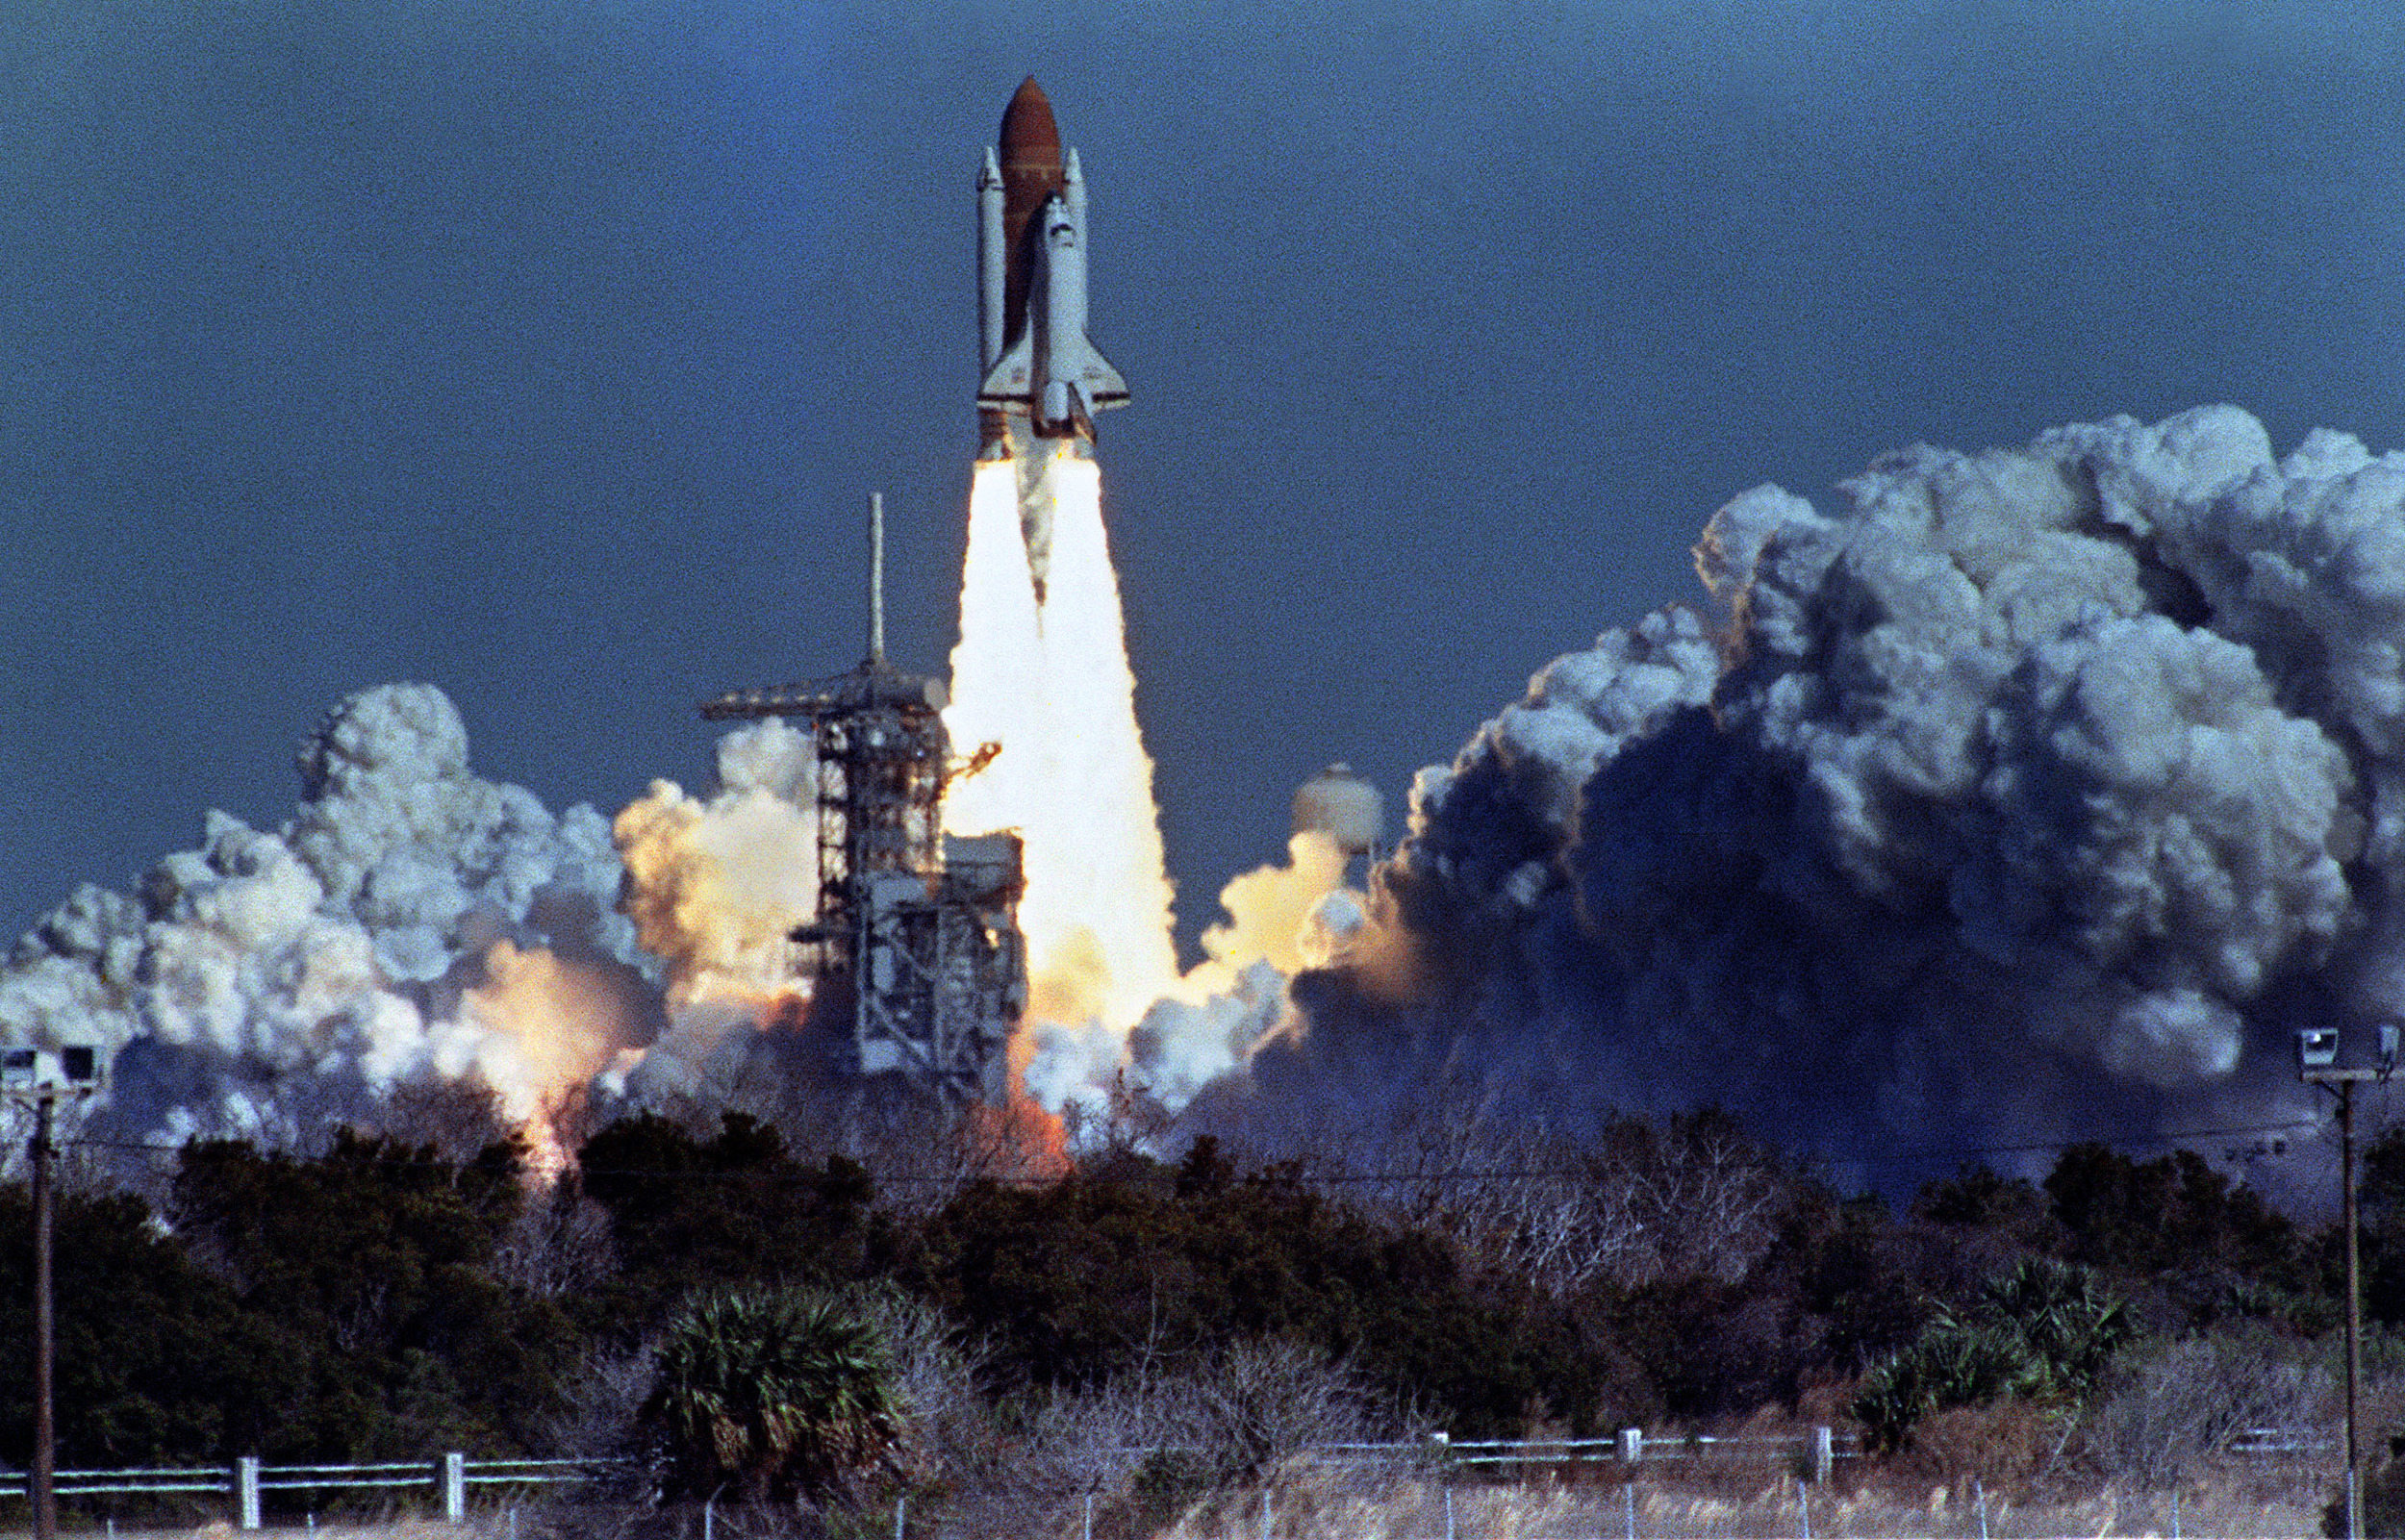 space shuttle challenger impact on america - photo #12